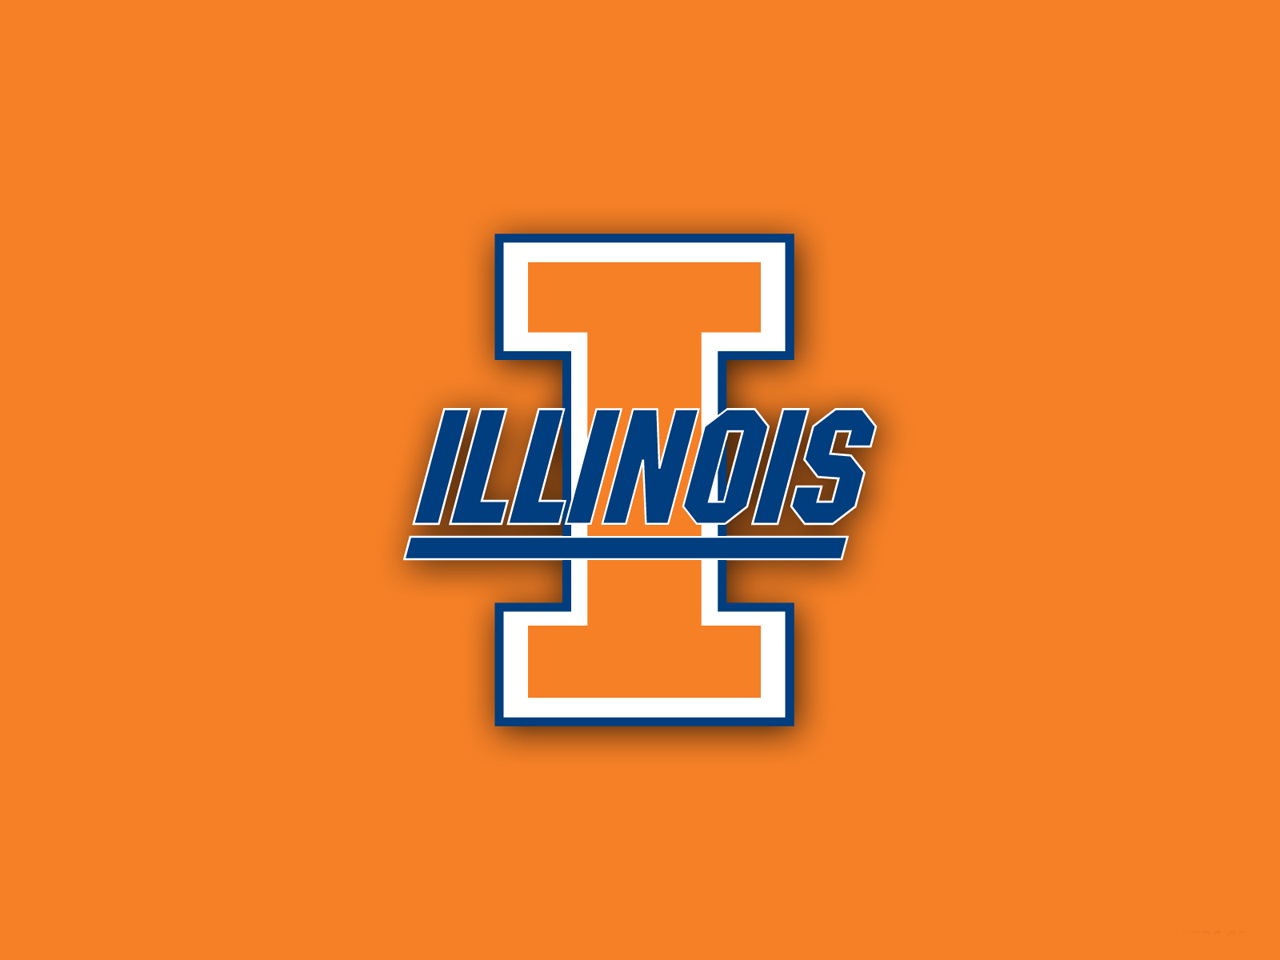 7488 university of illinois wallpaper 1280x960